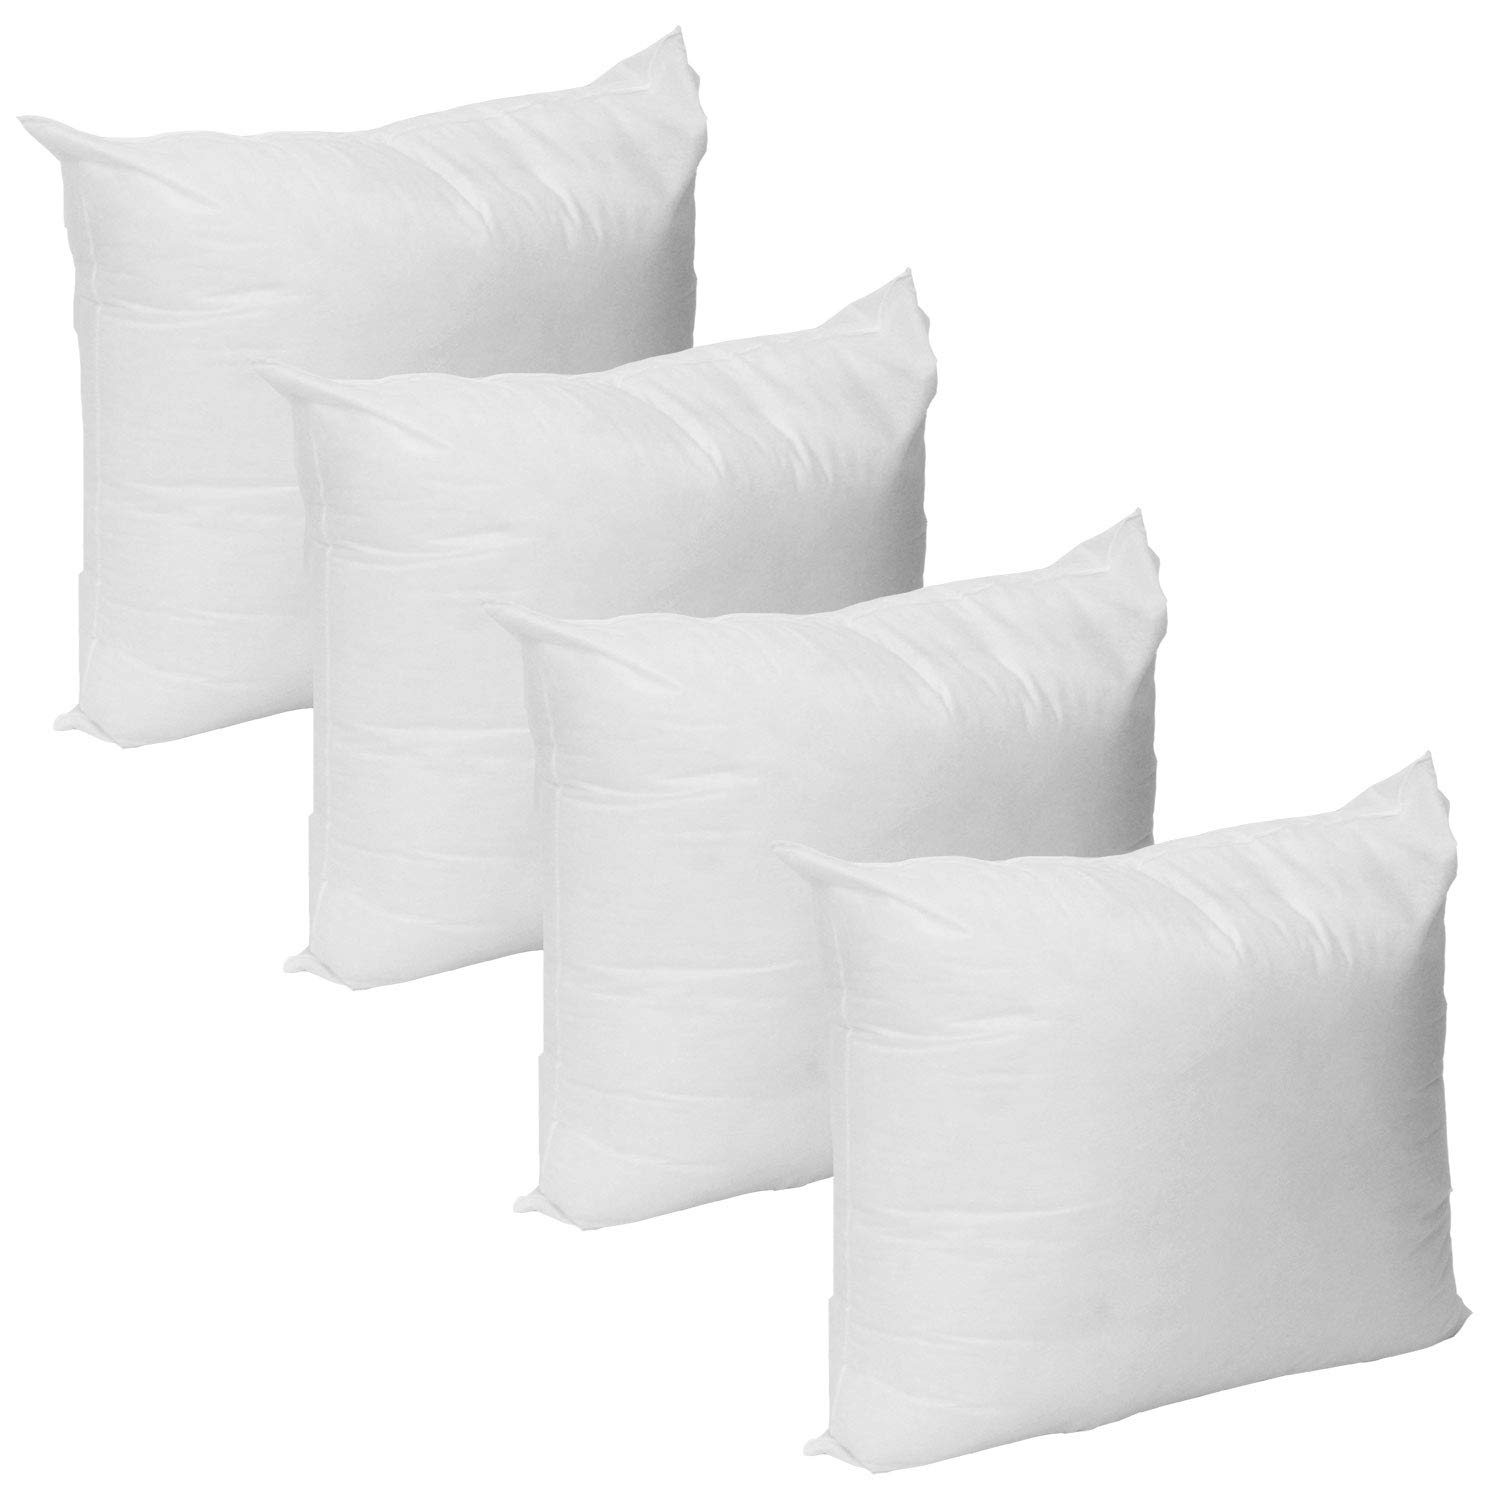 Set Of 4 - 18 x 18 Super Premium Hypoallergenic Stuffer Pillow Insert Sham Square Form Polyester, Standard / White - MADE IN The USA